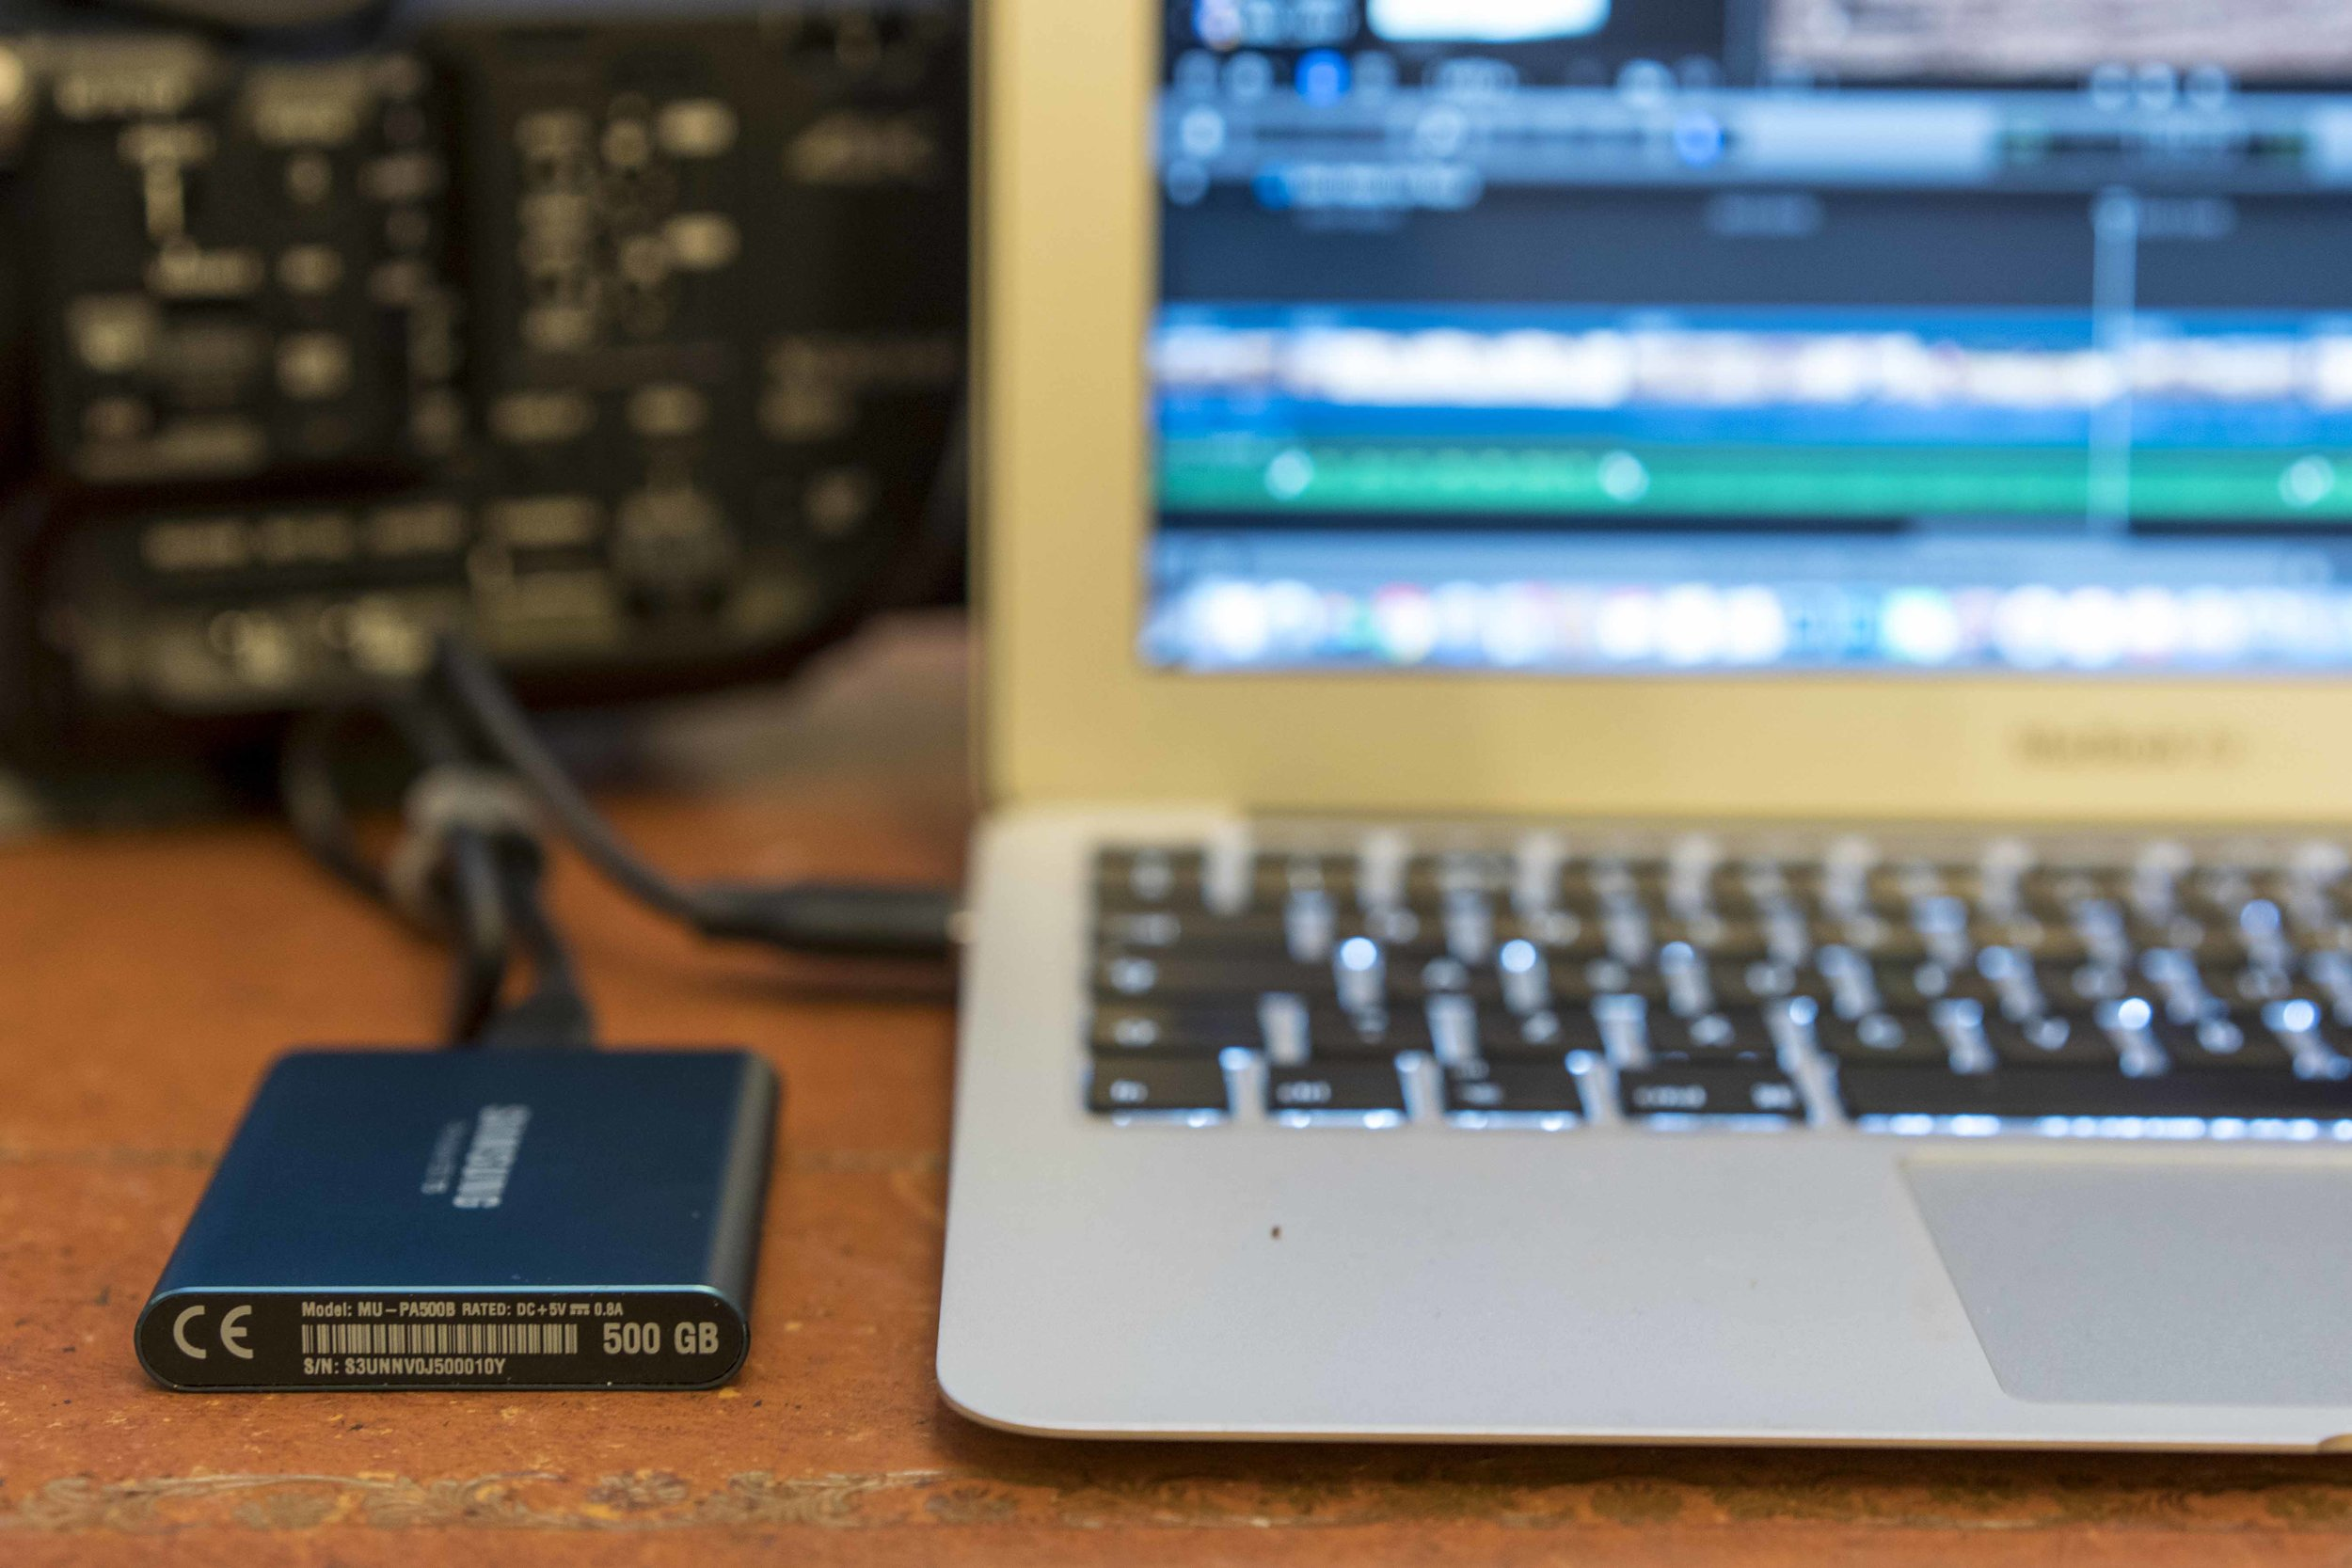 Thanks to the Samsung Portable SSD T5, John Owens is able to quickly and efficiently transfer his footage, saving time on-set.